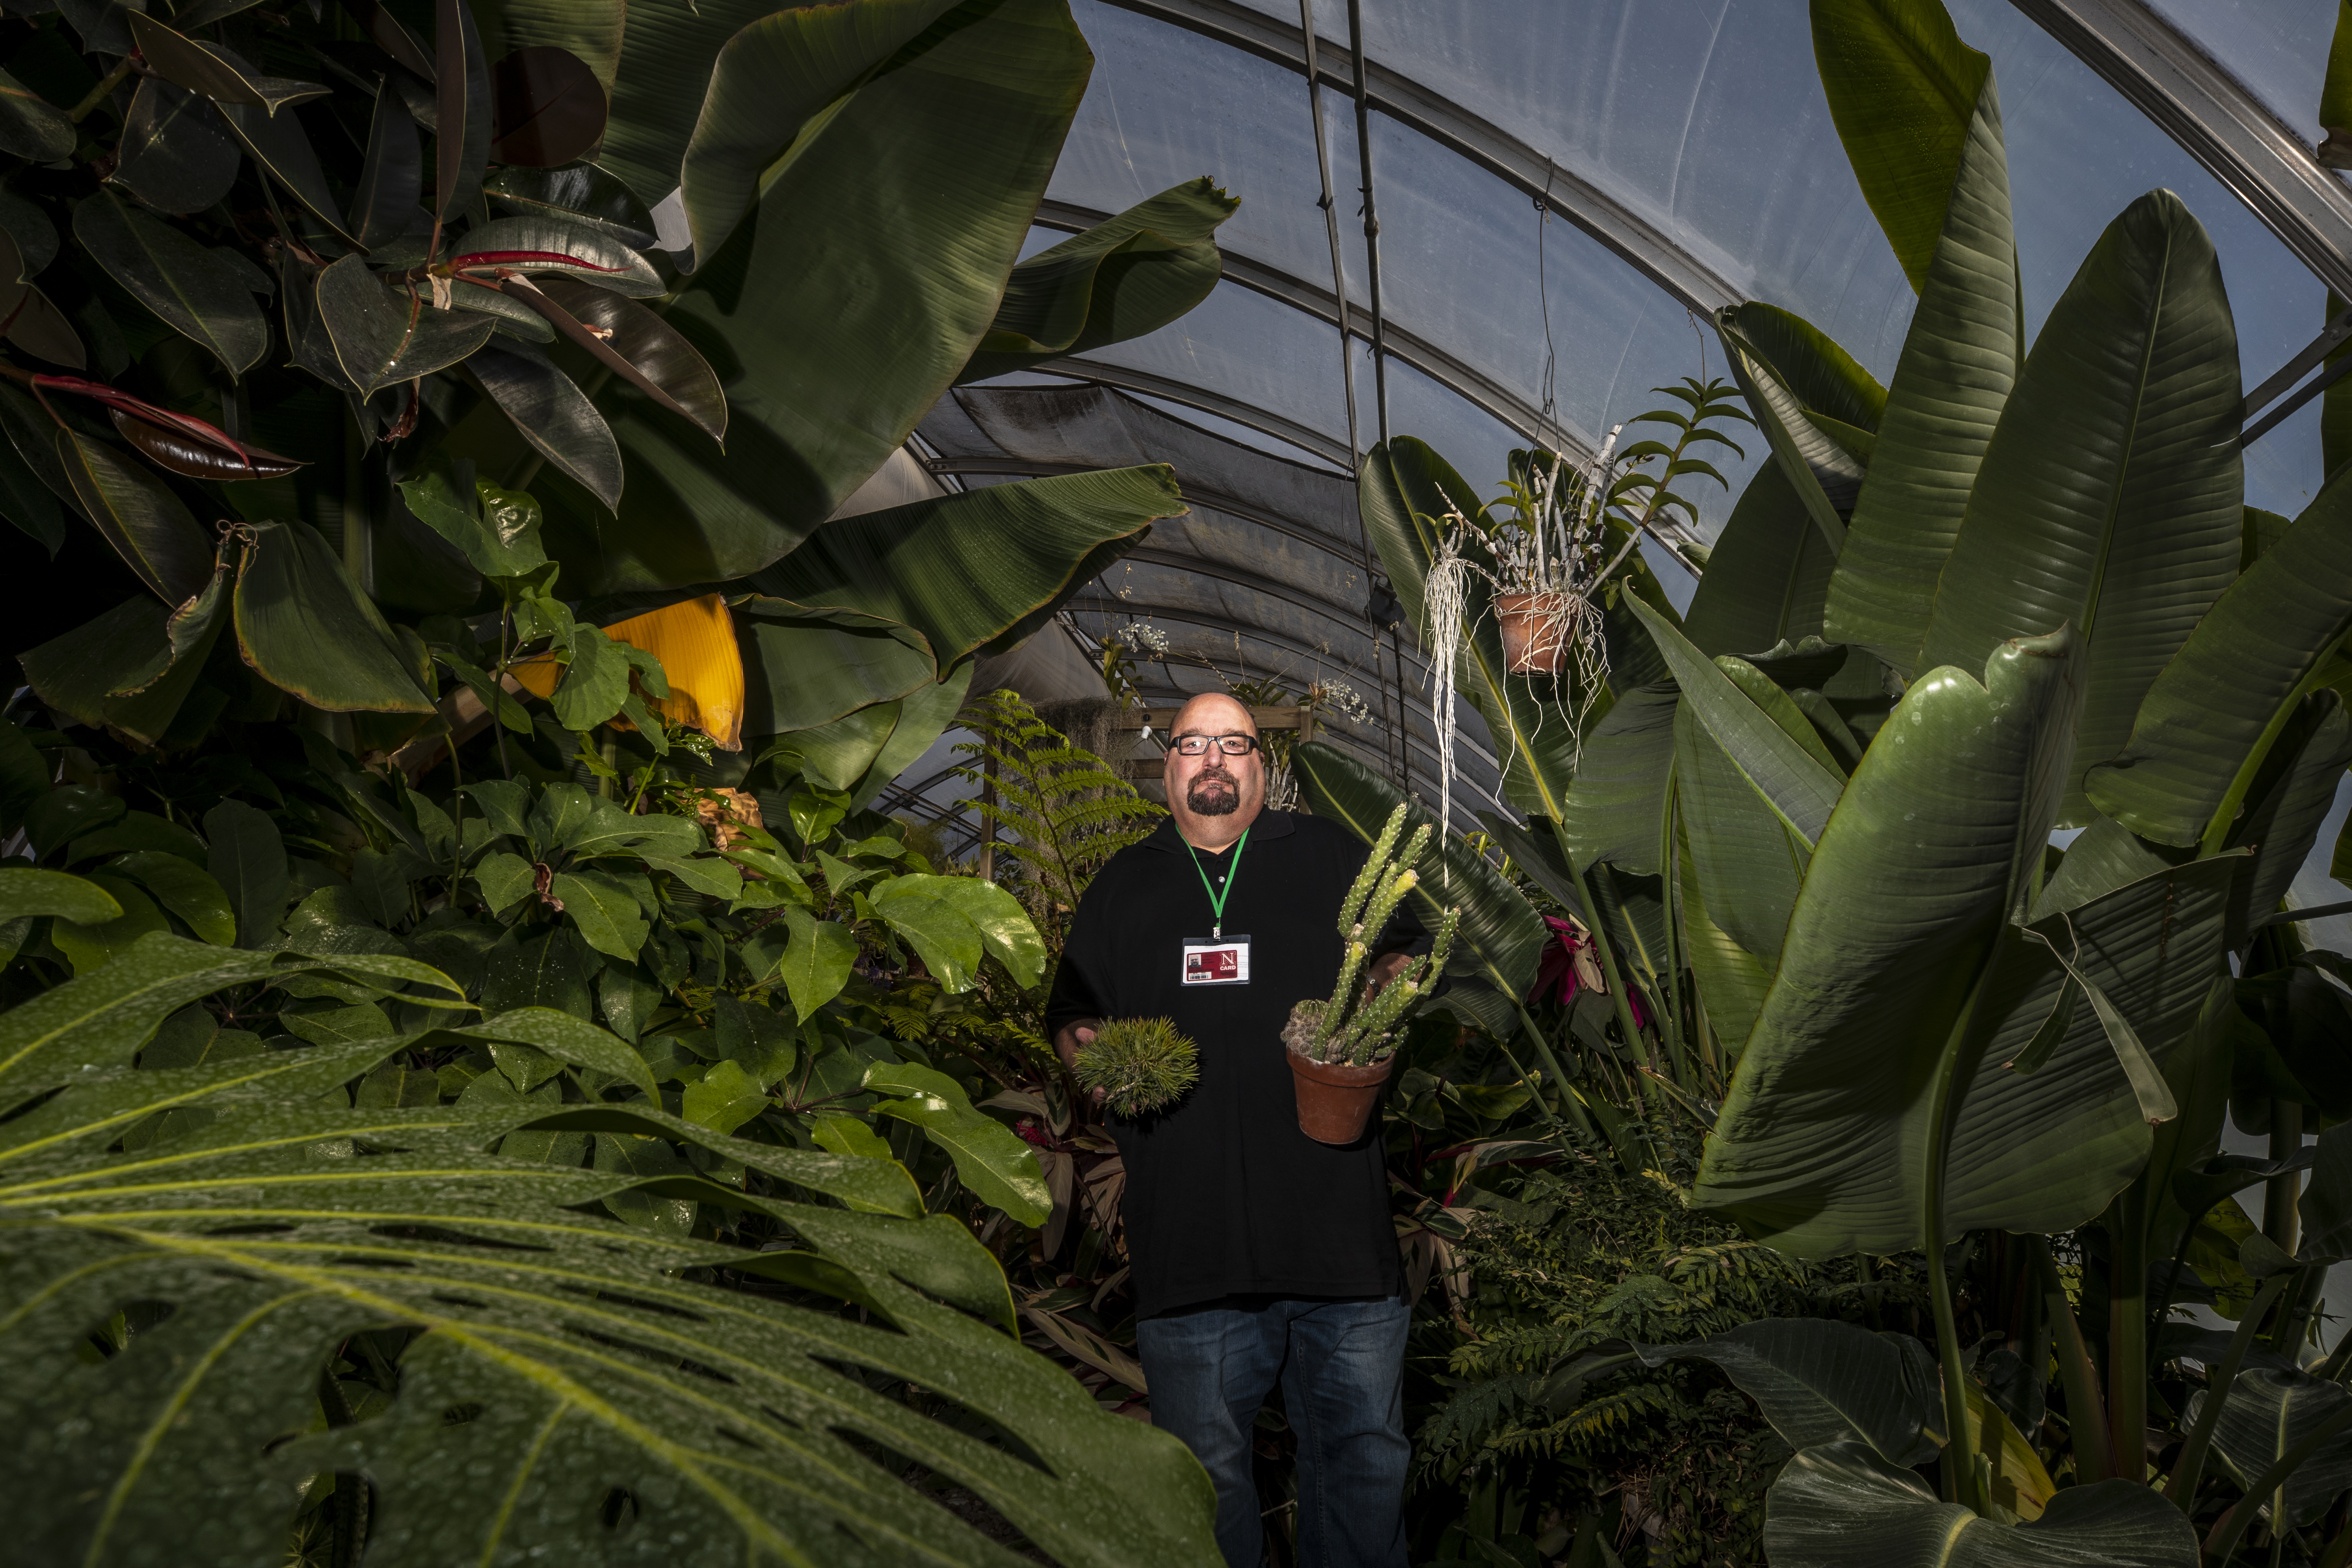 """Jeff Witkowski, greenhouse manager for Agricultural Research Division, holds a couple of his favorite specimens in the East Campus """"jungle."""" Craig Chandler, University Communication"""